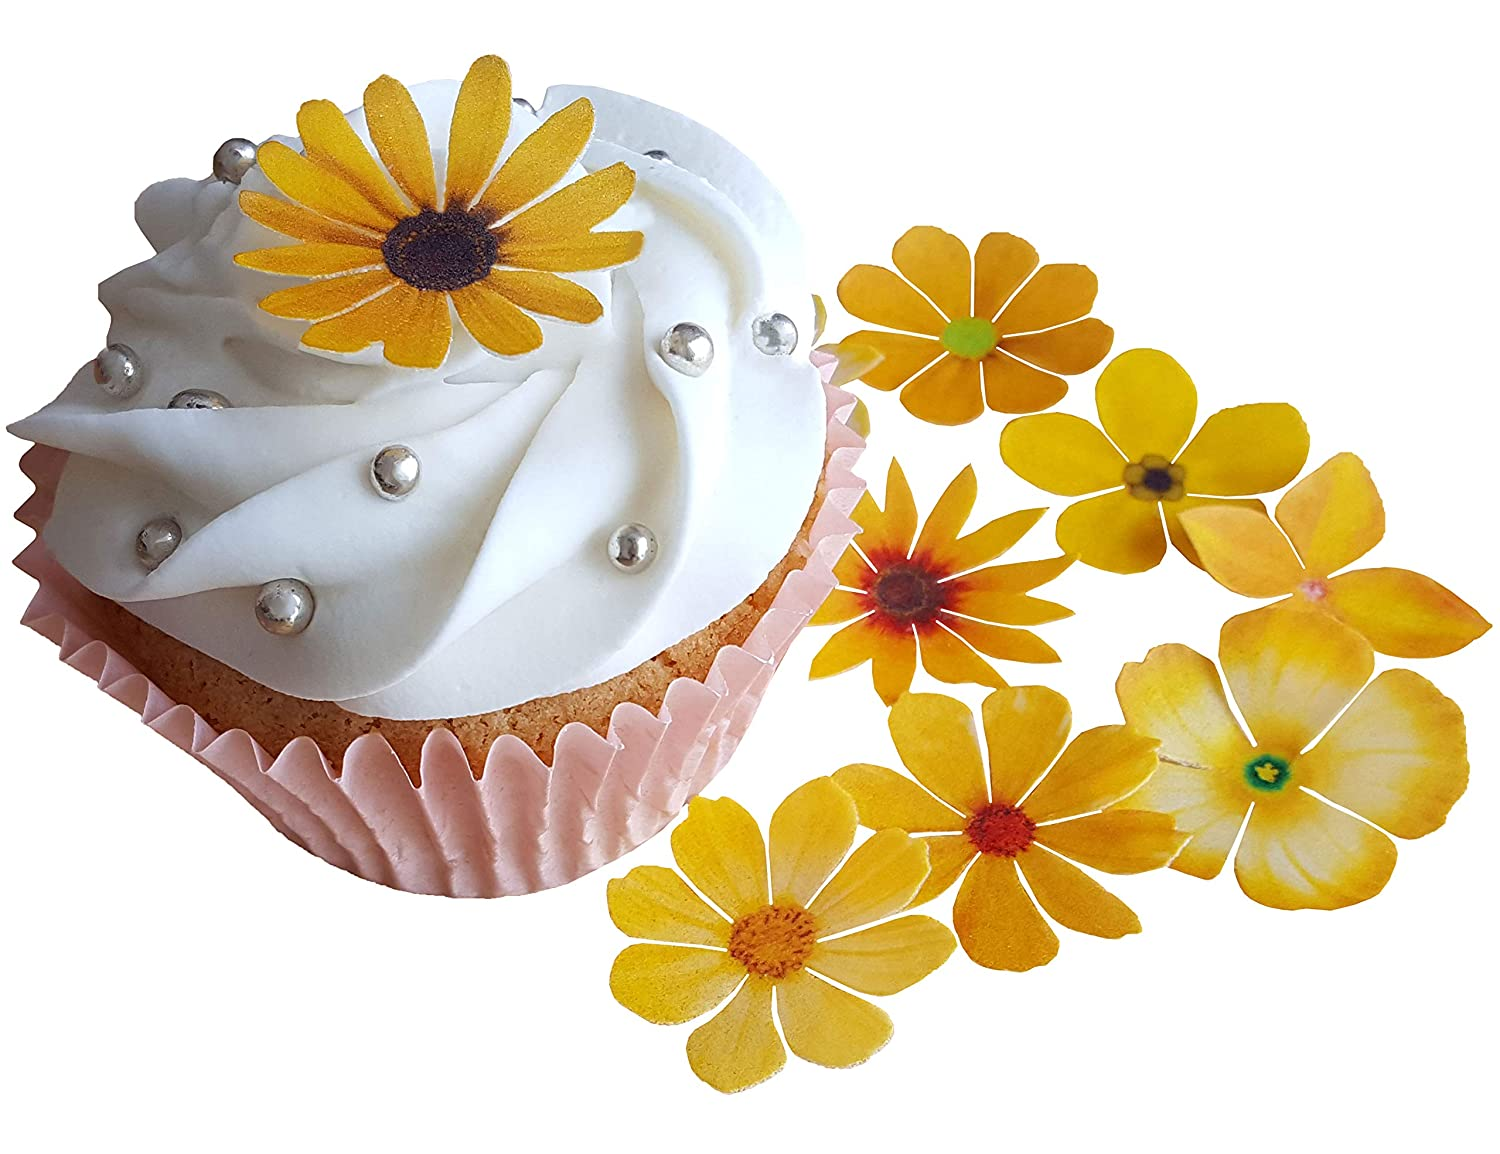 . PRE-CUT BEAUTIFUL YELLOW FLOWERS EDIBLE RICE / WAFER PAPER PRE CUT CUPCAKE CAKE DESSERT TOPPERS BIRTHDAY PARTY WEDDING BABY SHOWER DECORATIONS. (Flowers) Anglesit Ltd